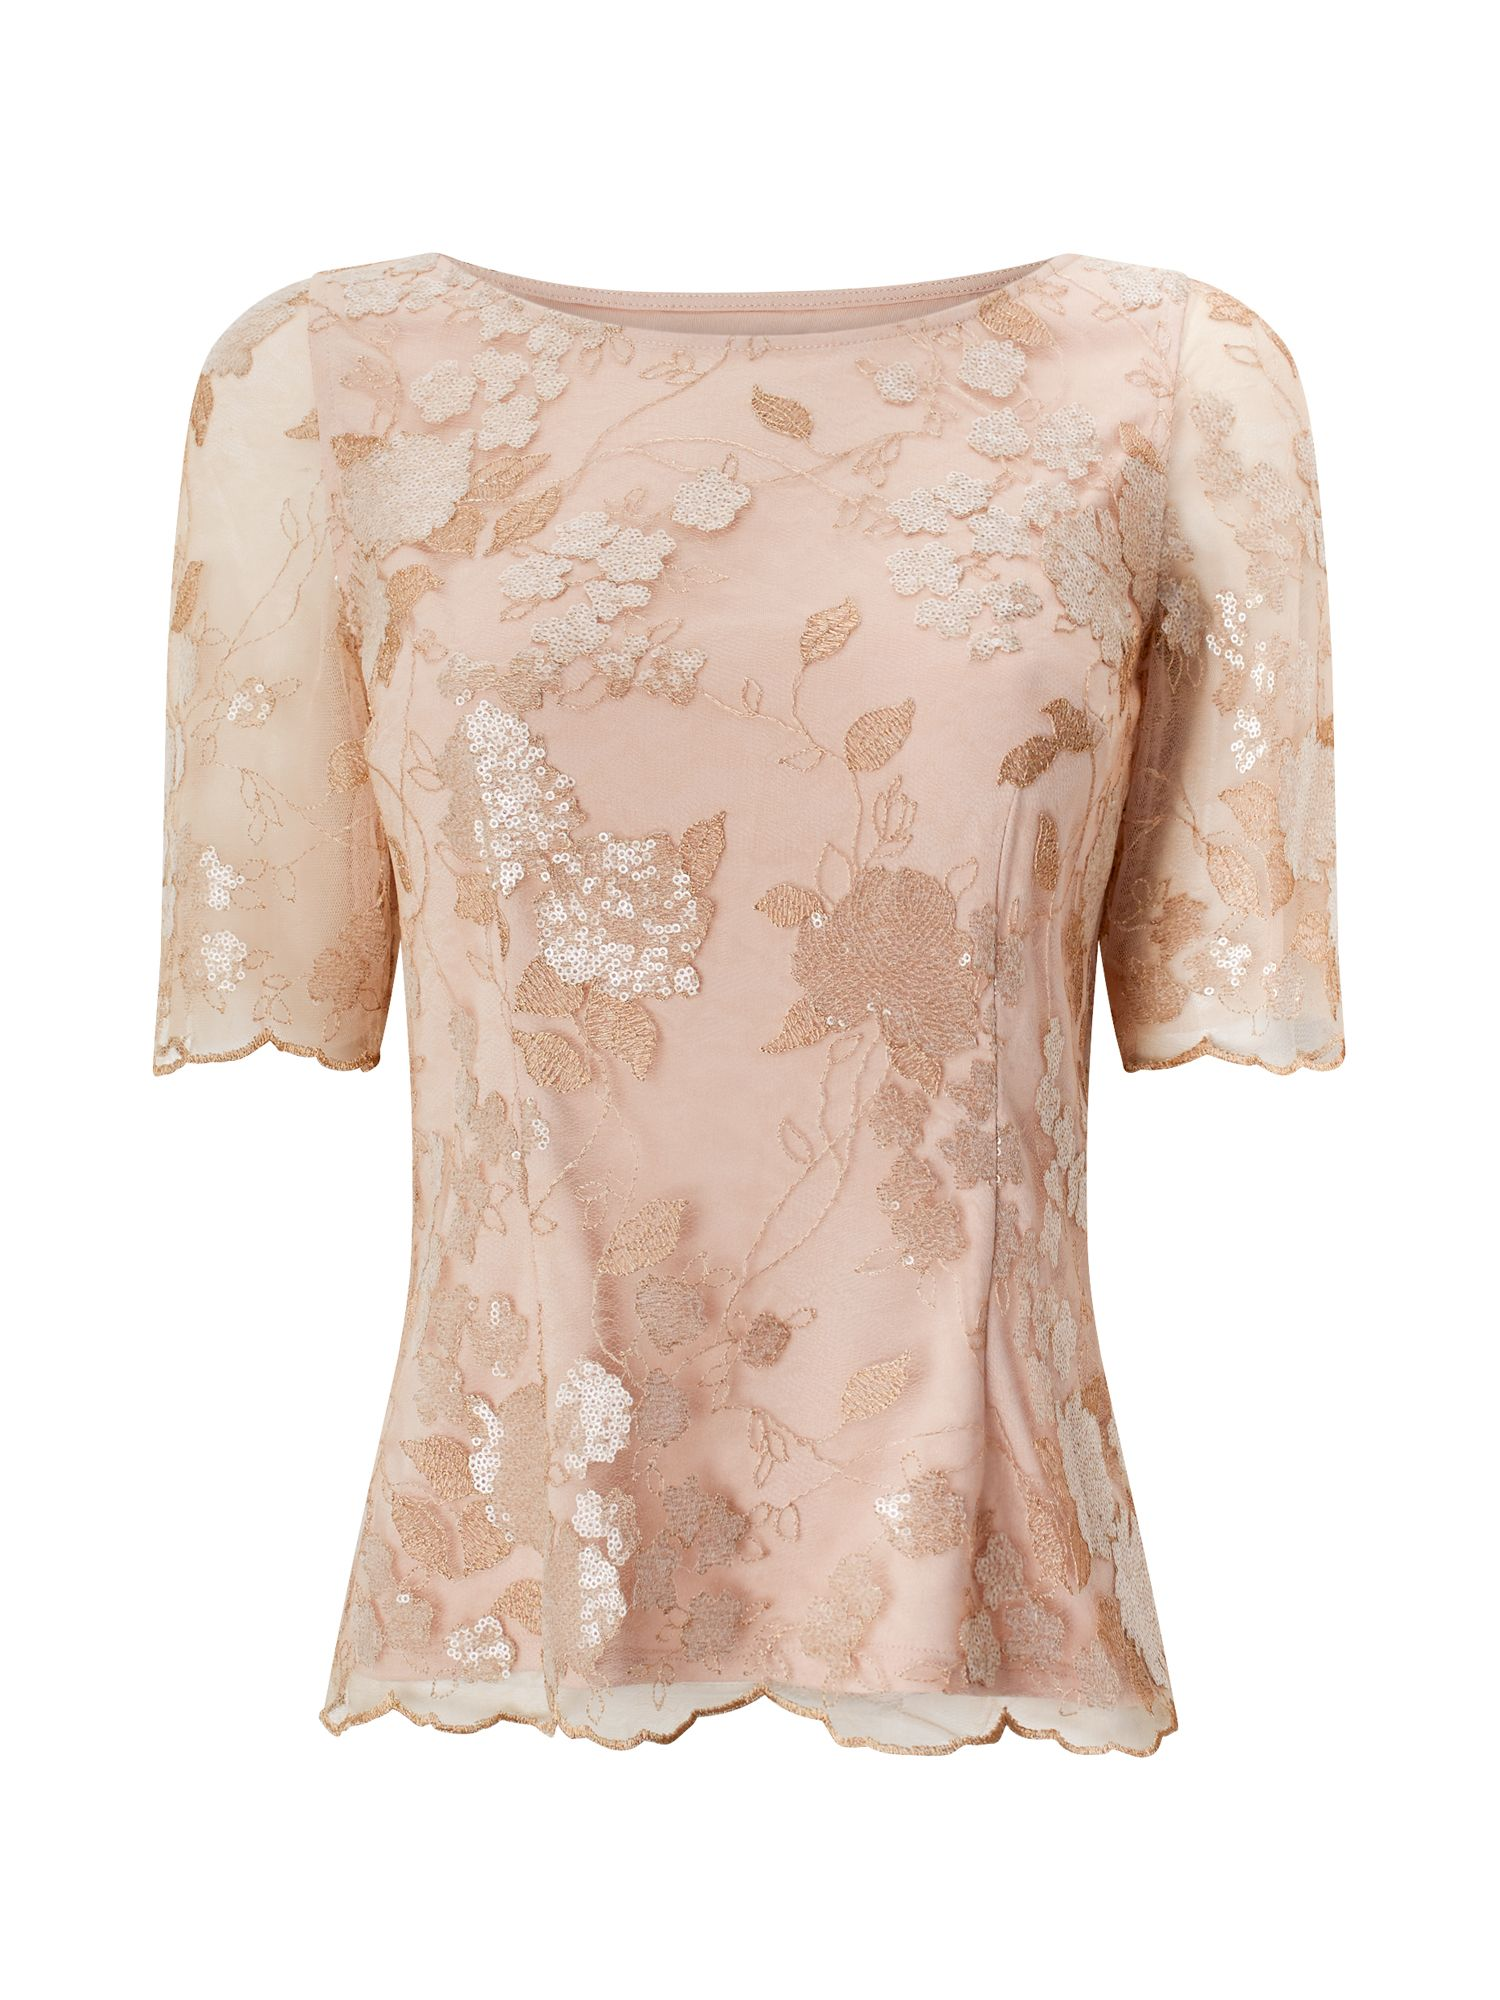 Jacques Vert HERMIONE LACE BLOUSE, Neutral